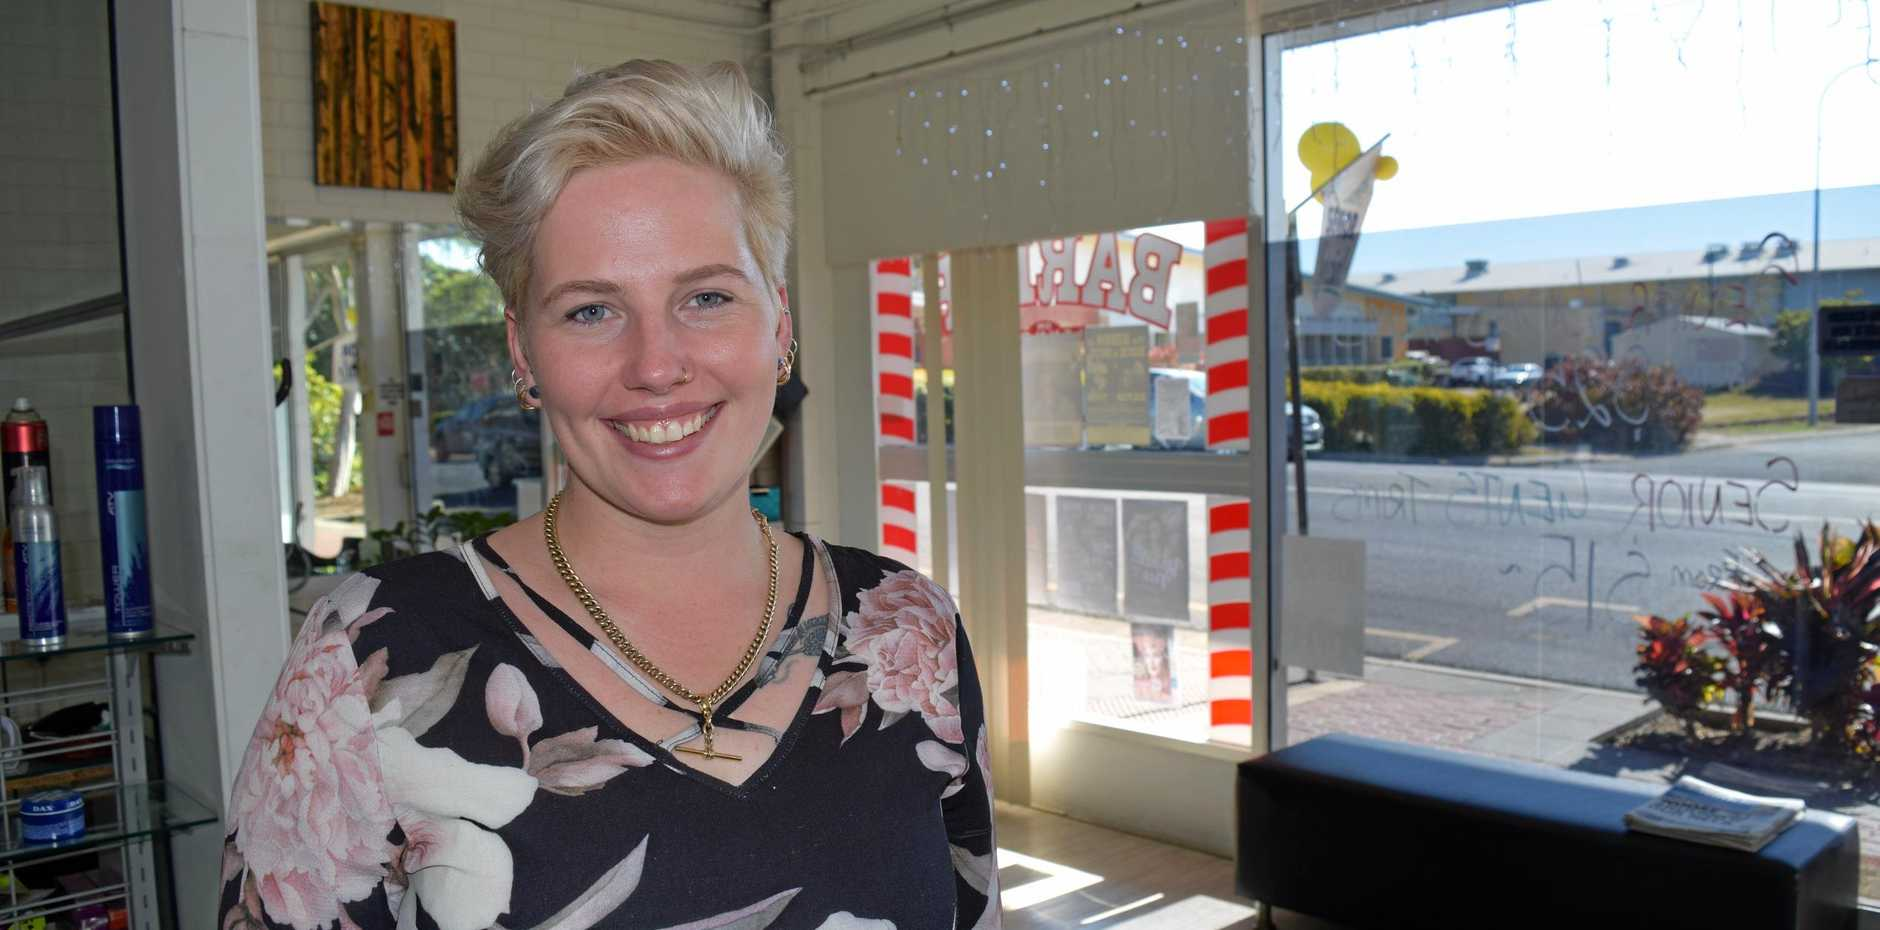 Jess Zelow of Hart of Hair believes Maryborough's support has be phenomenal in helping her business stay afloat.